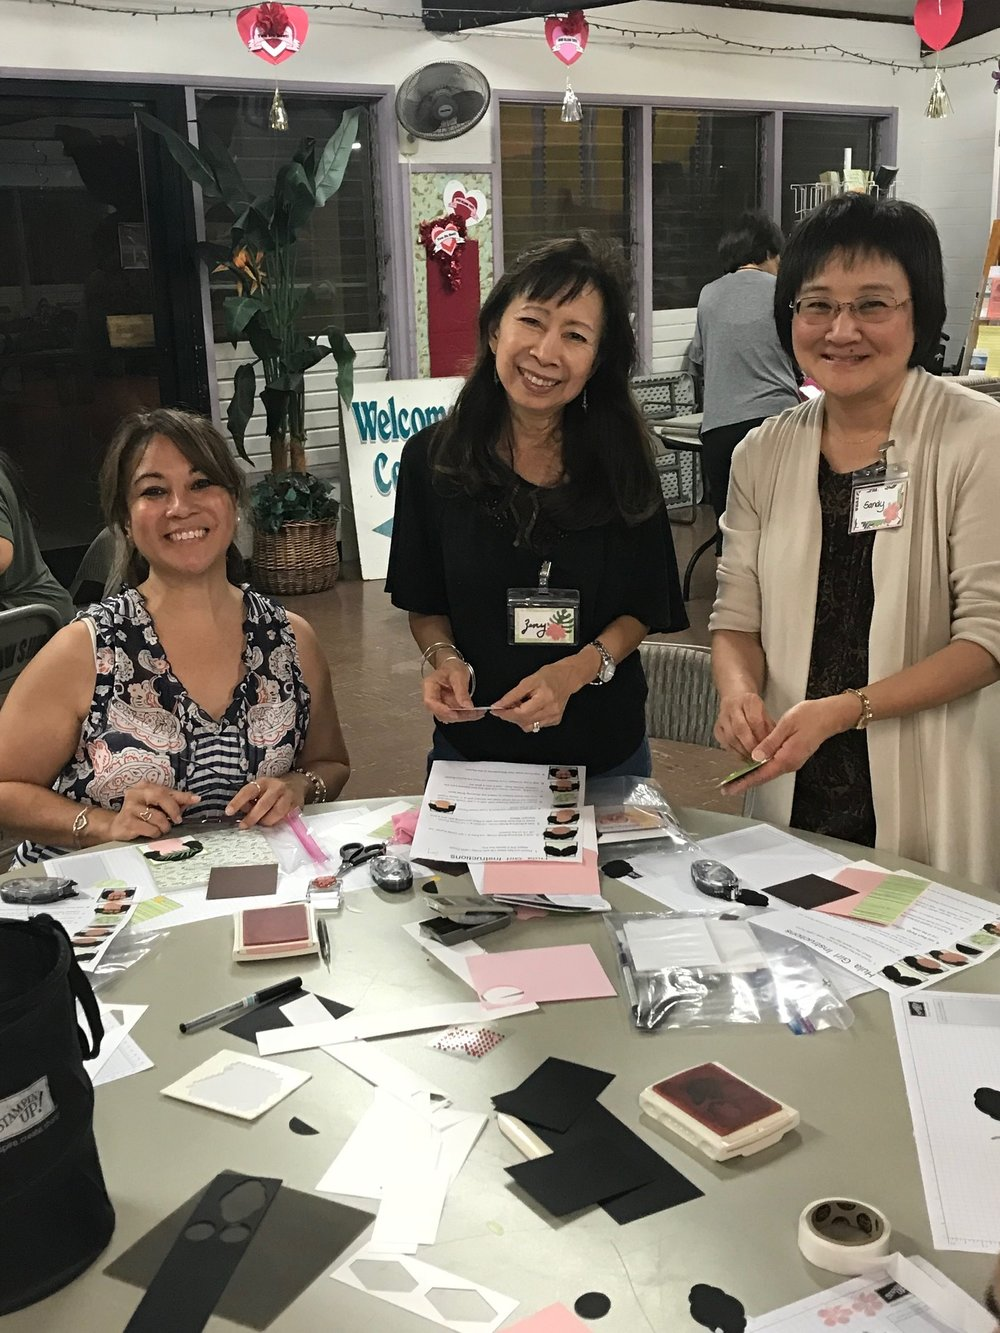 Happy Stampers at Inspiration Night